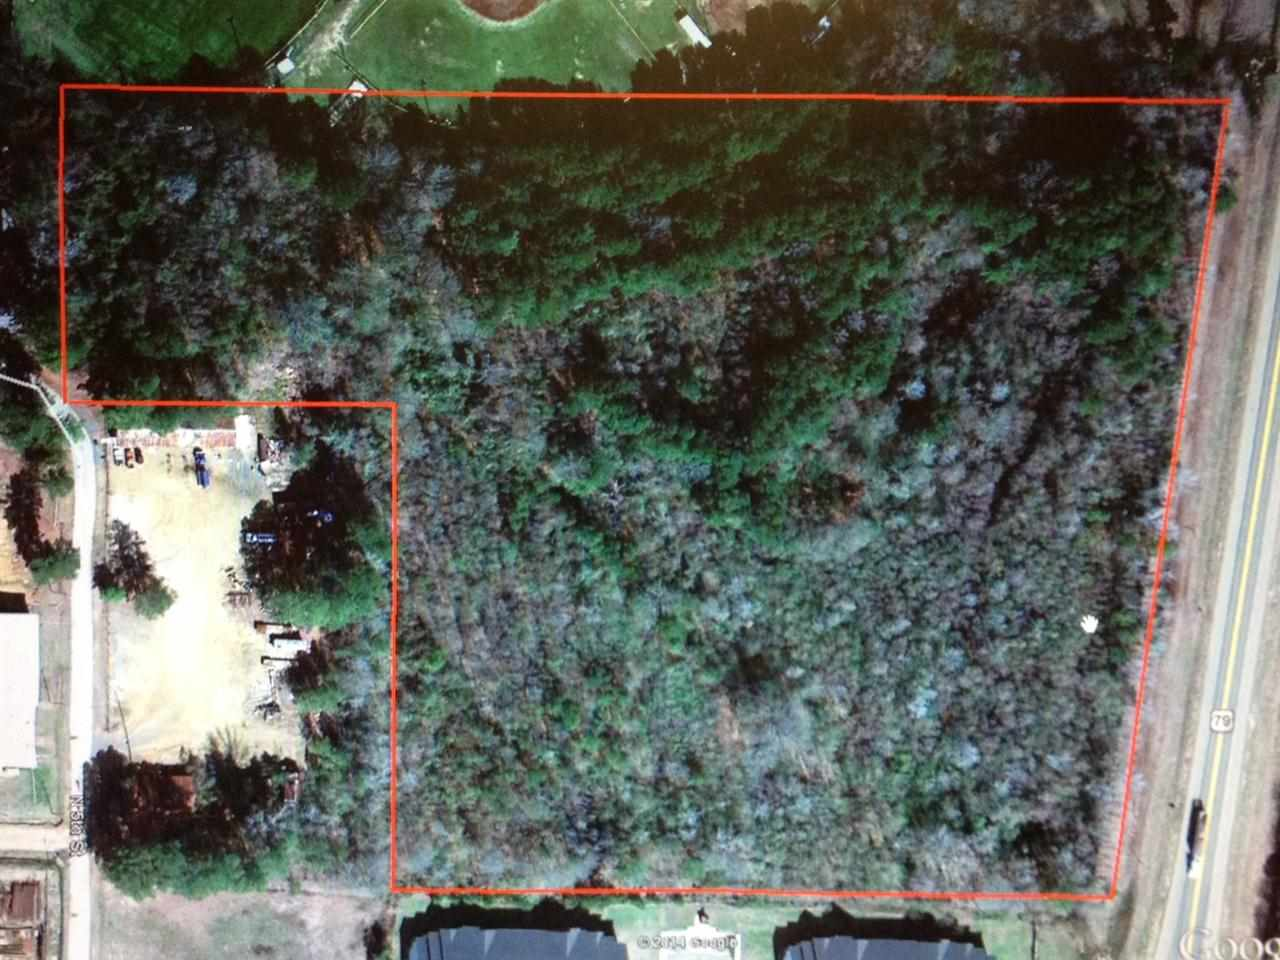 Image of Acreage for Sale near Magnolia, Arkansas, in Columbia county: 15.64 acres